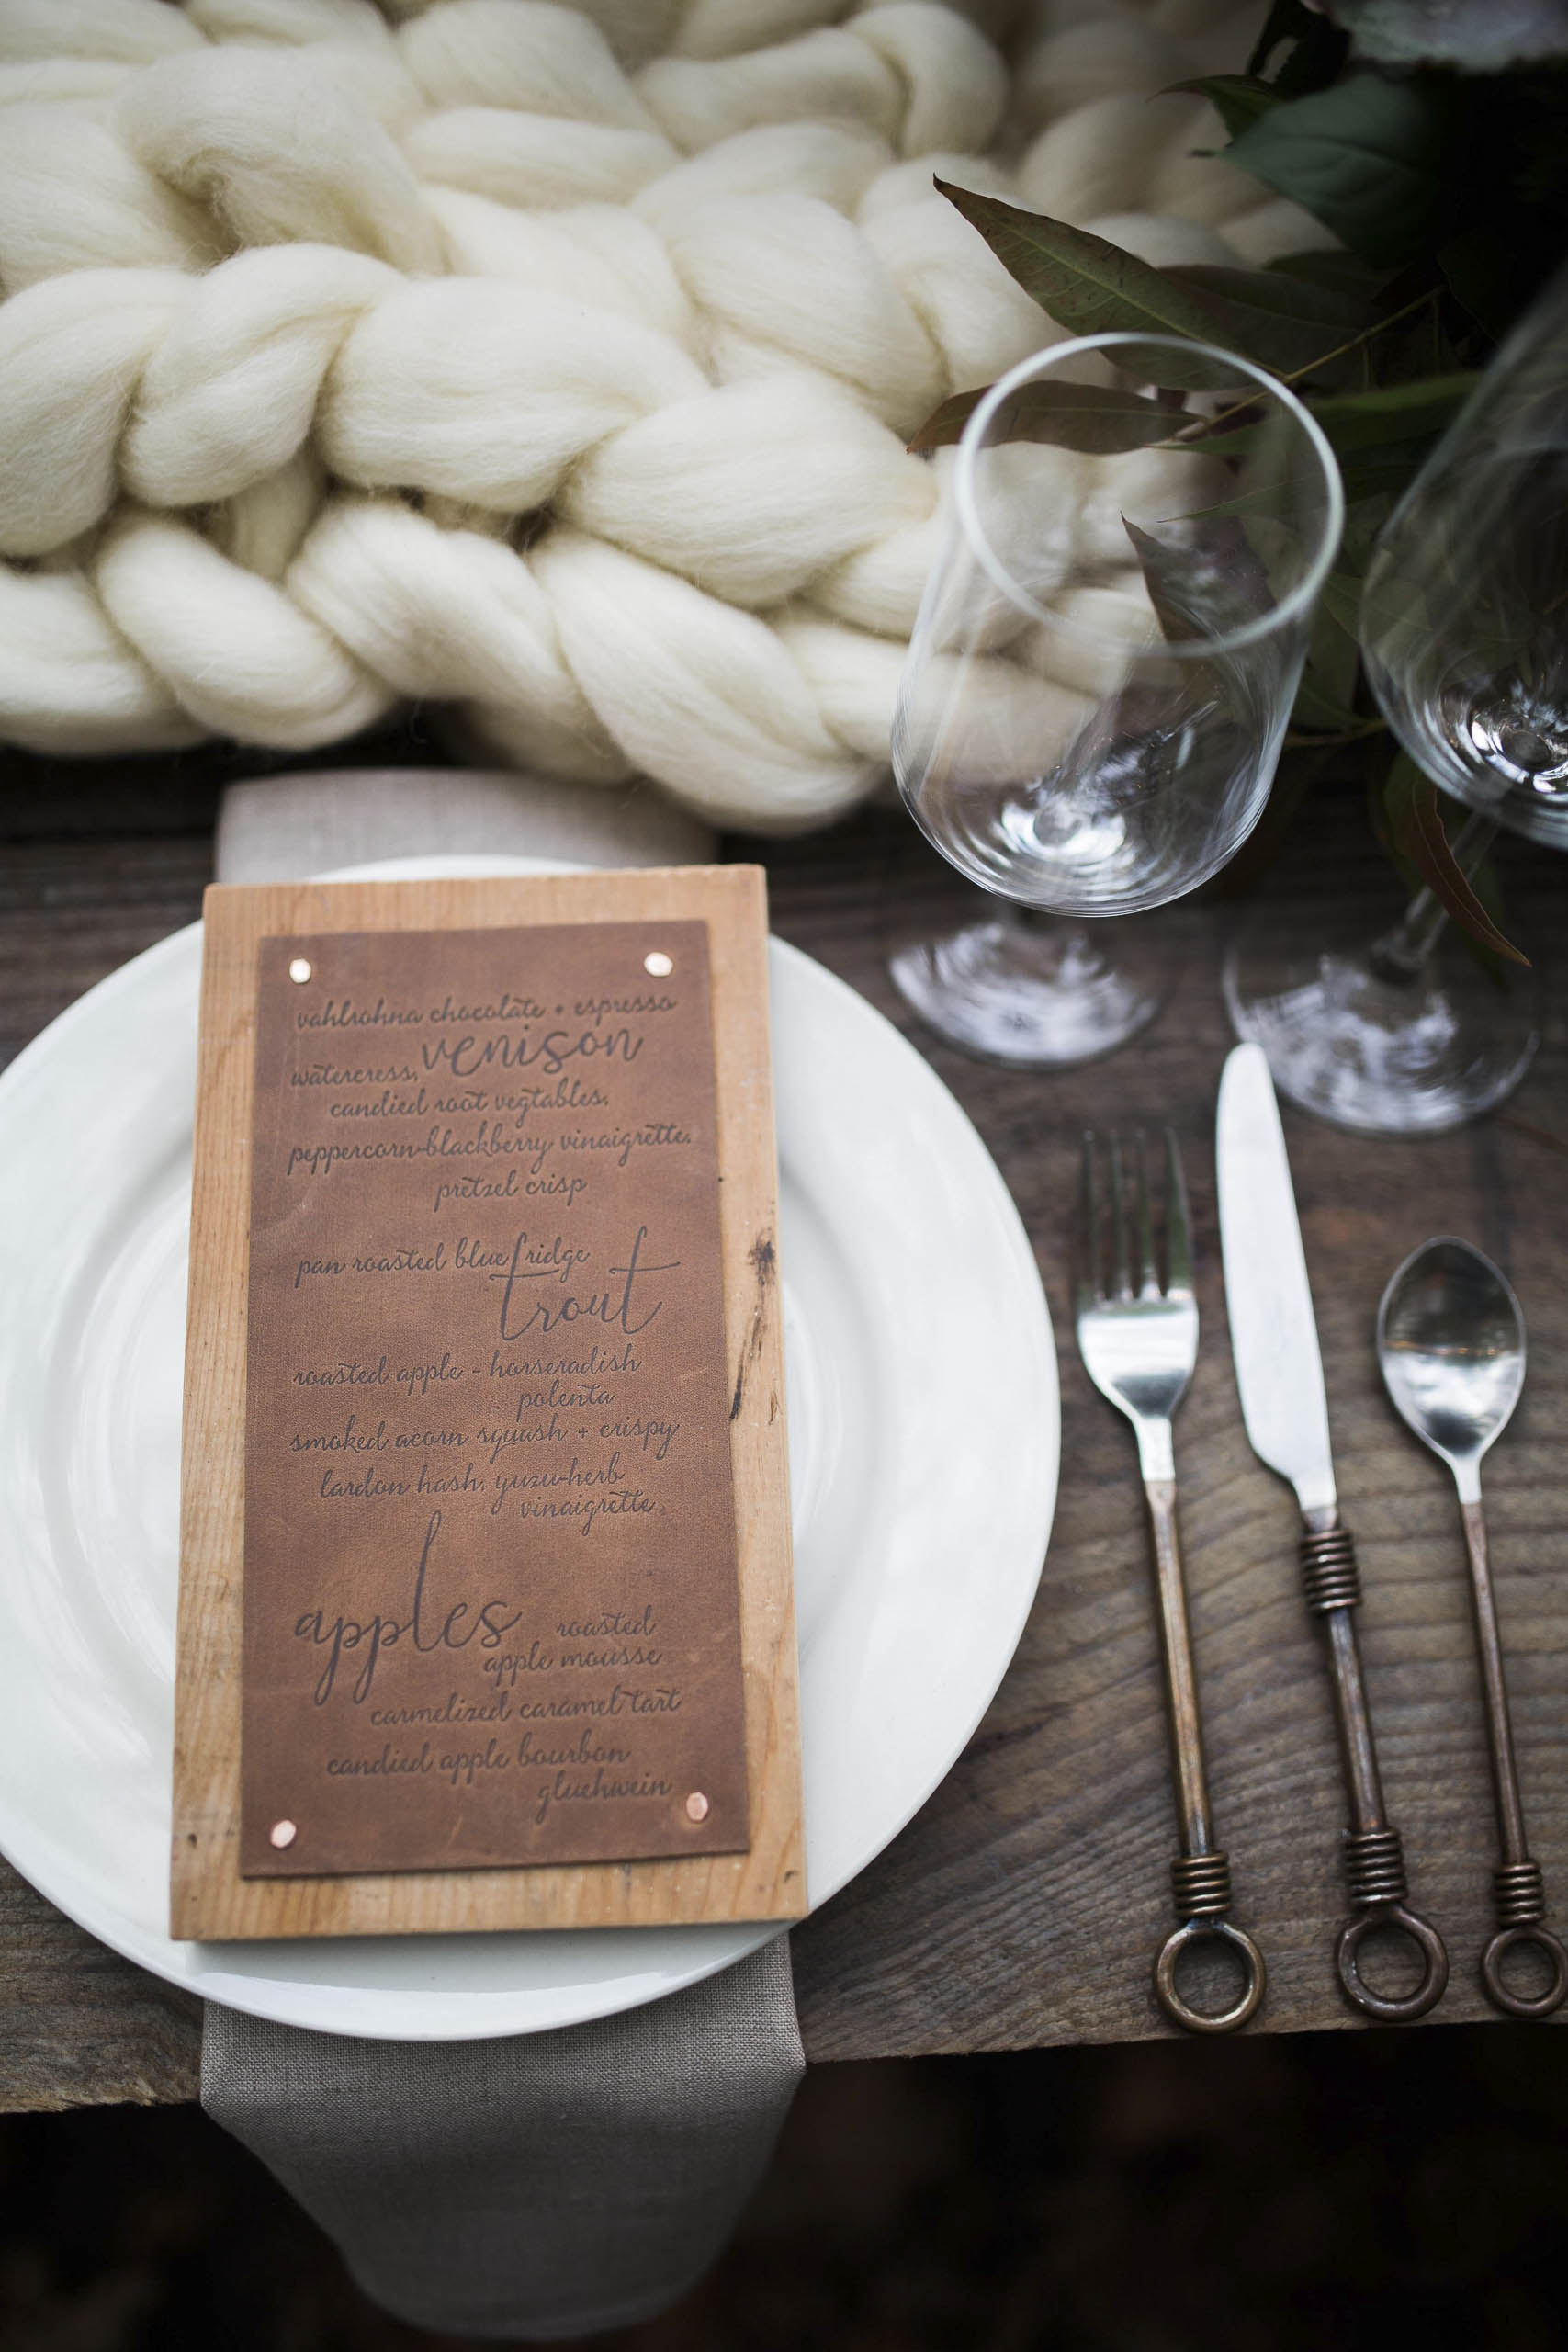 Wood and Leather Menus for the Vero Workshop